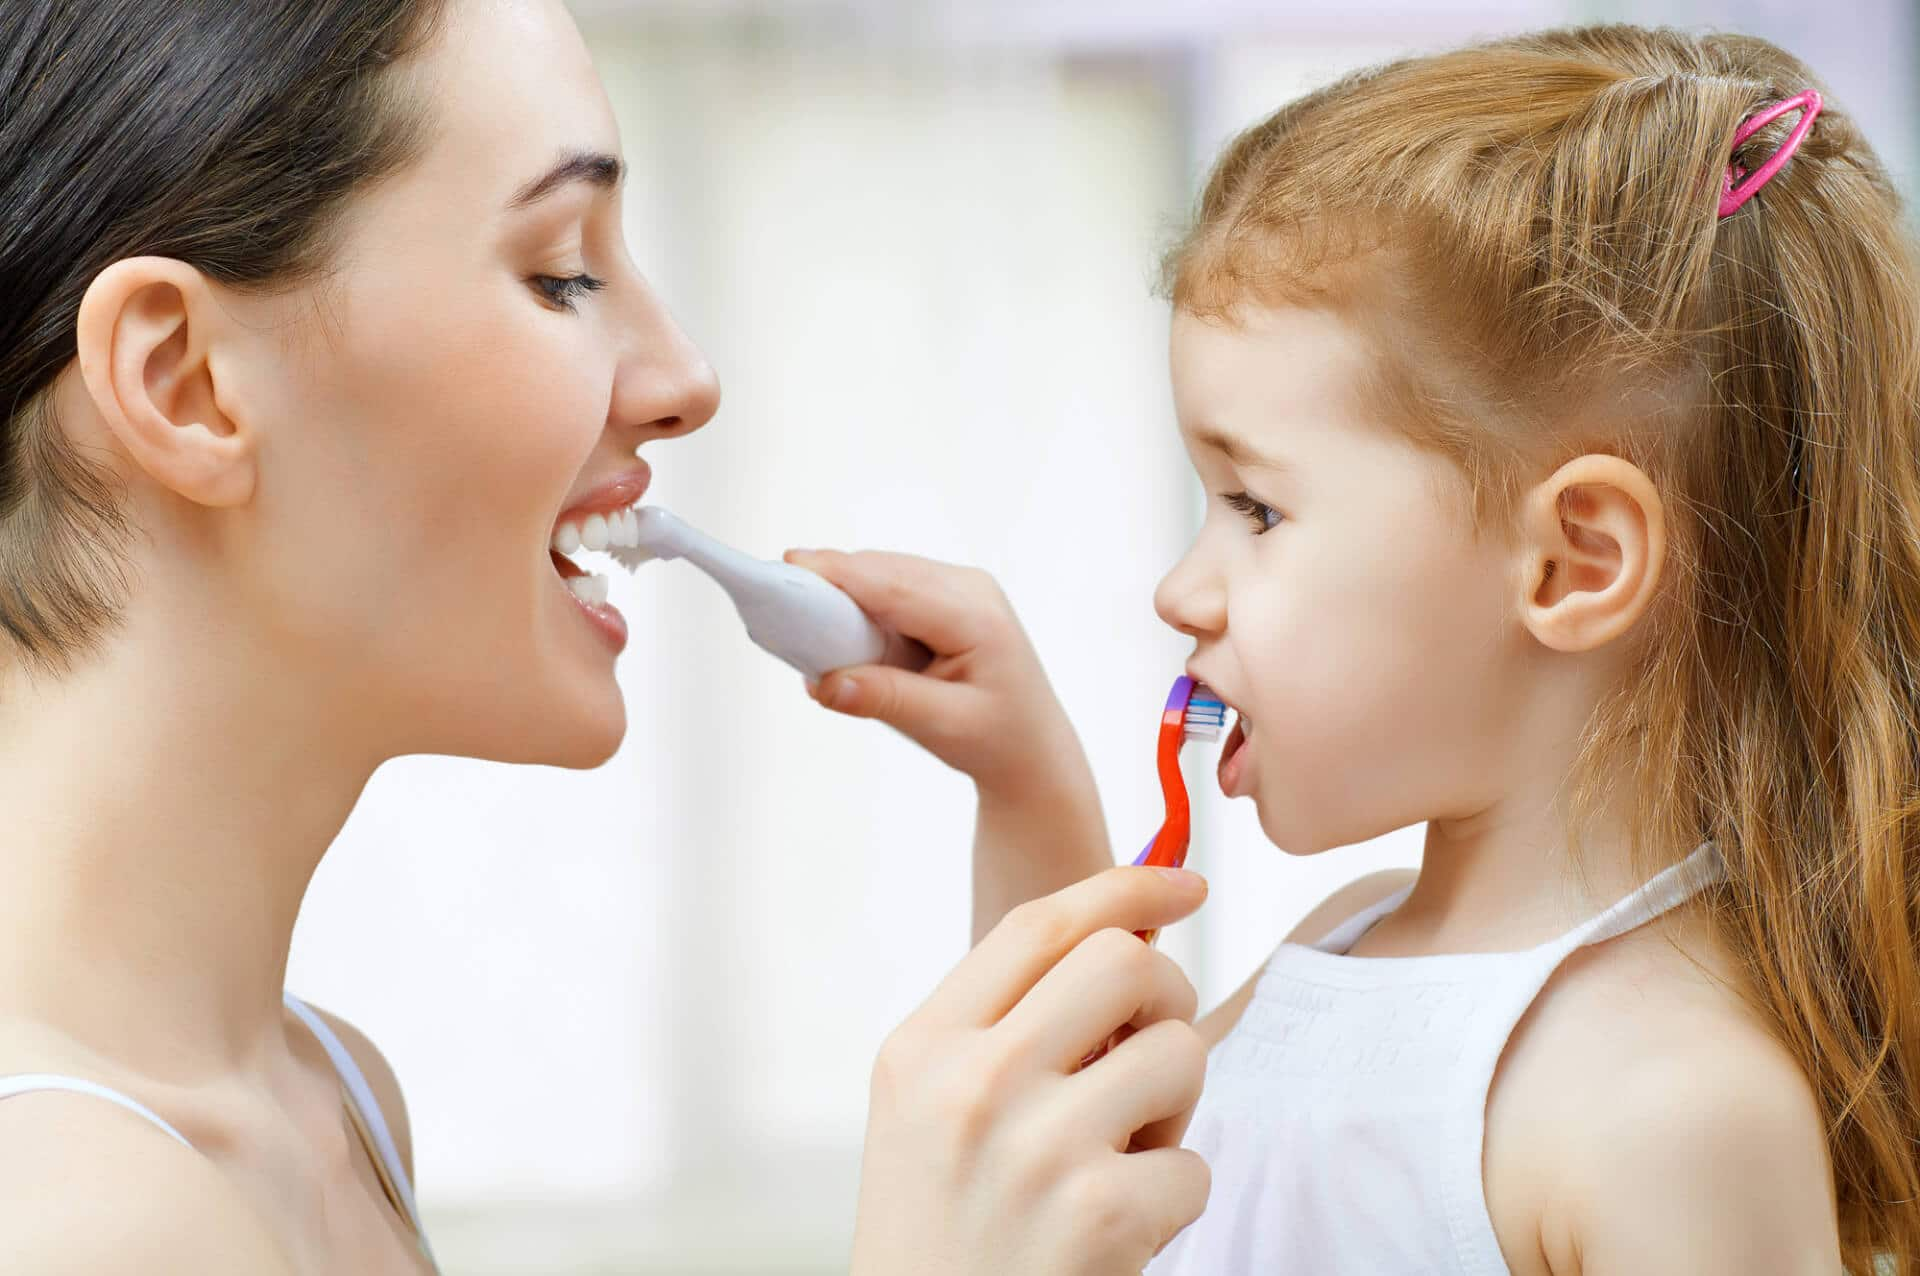 Where can I find the best boca raton pediatric dentistry?